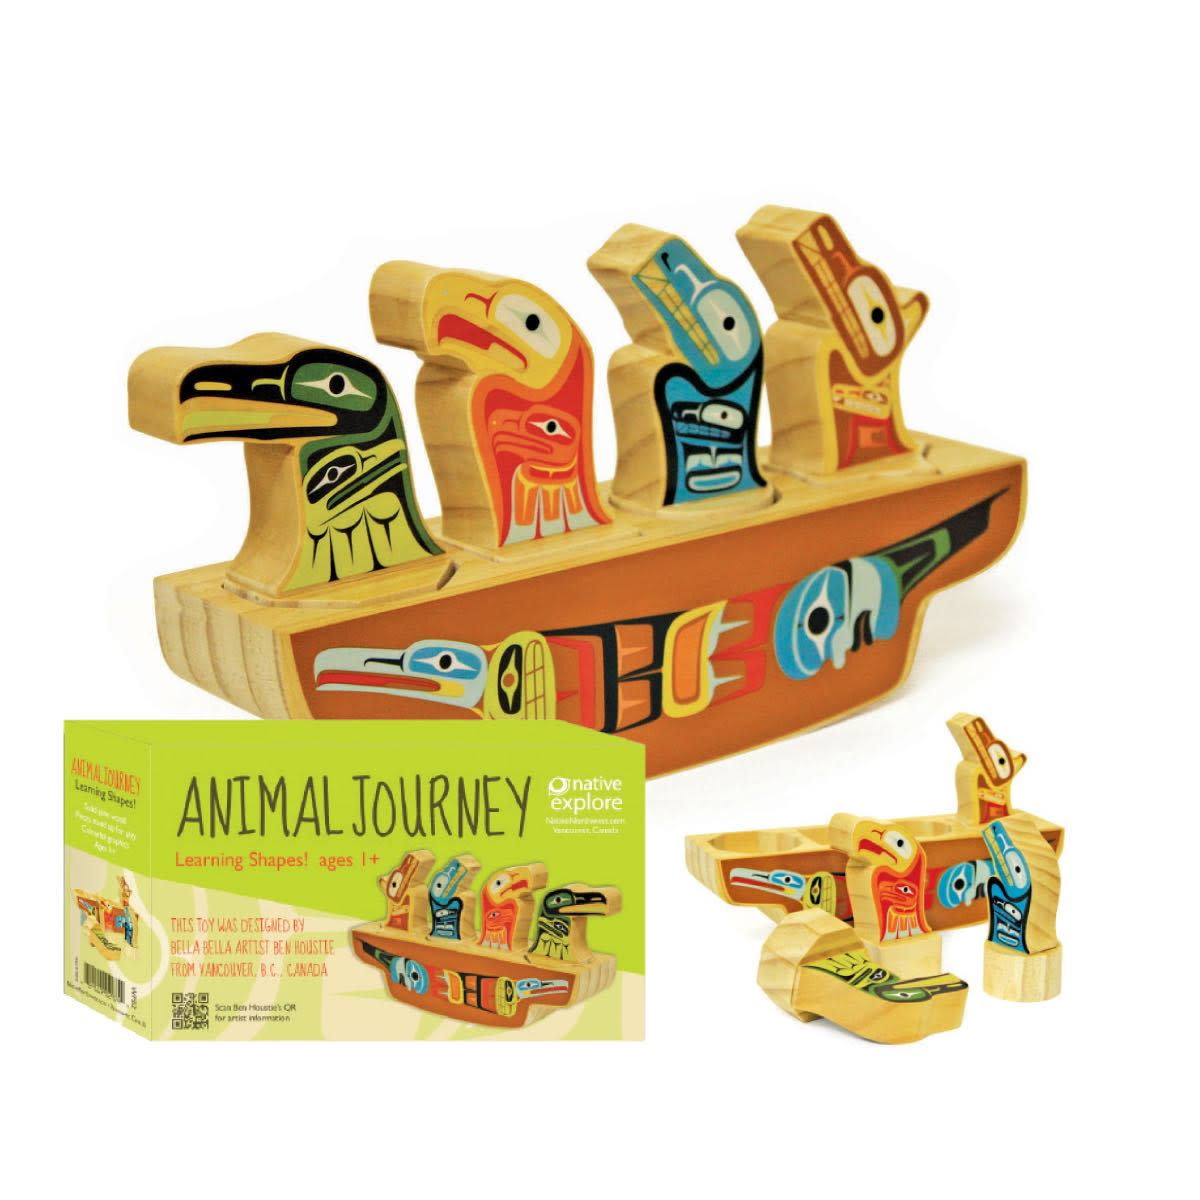 Learning Shapes-Animal Journey by Ben Houstie-1